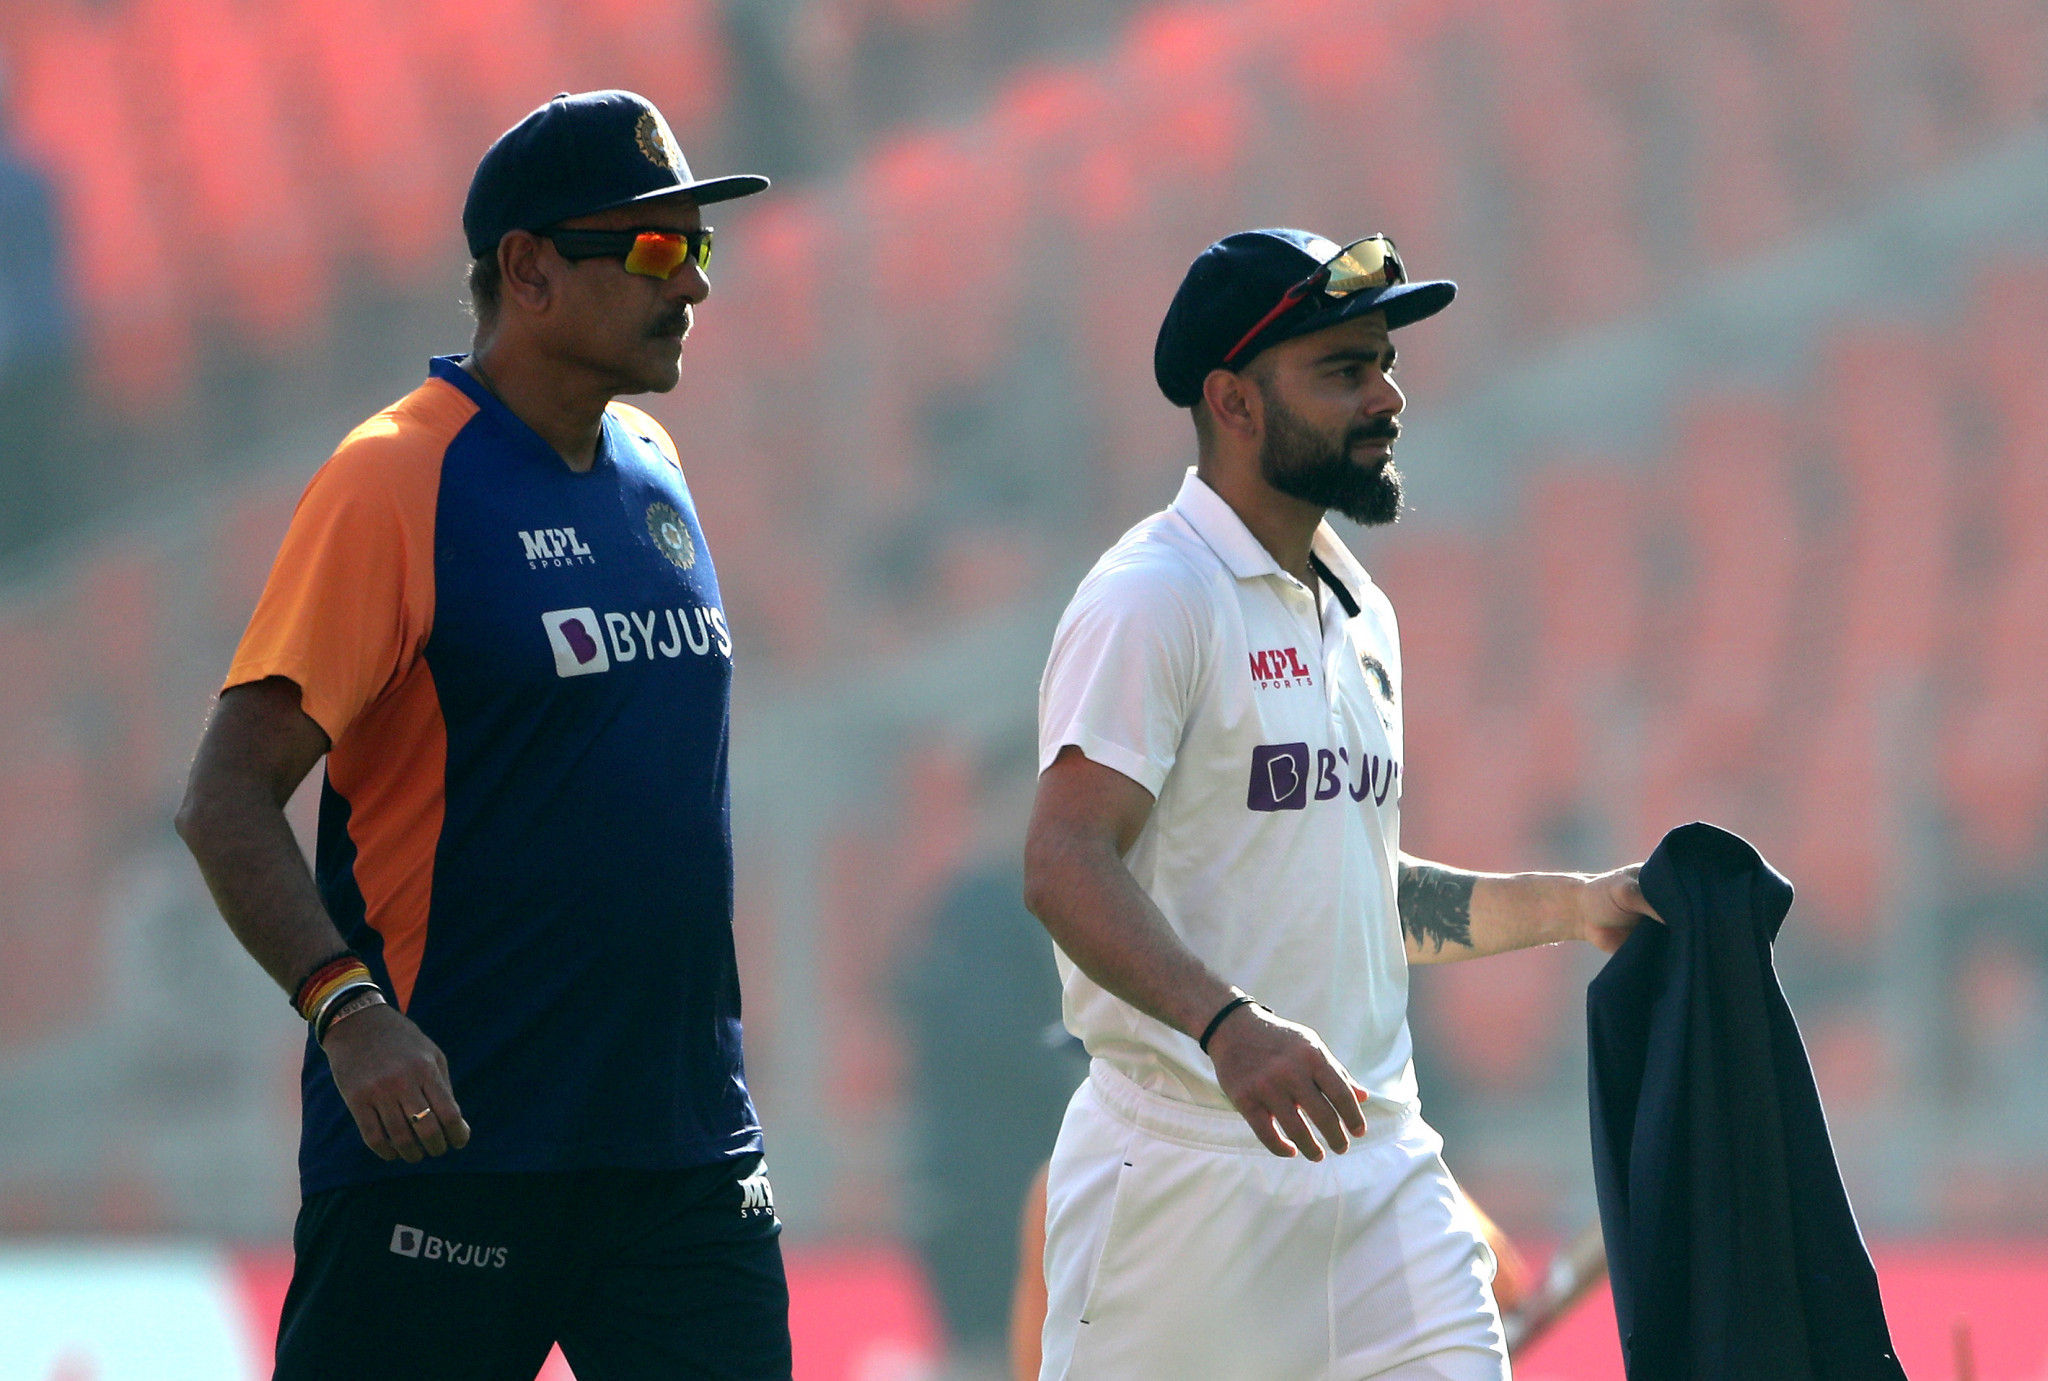 Board of Control for Cricket in India angry at Shastri and Kohli's breach of COVID-19 rules